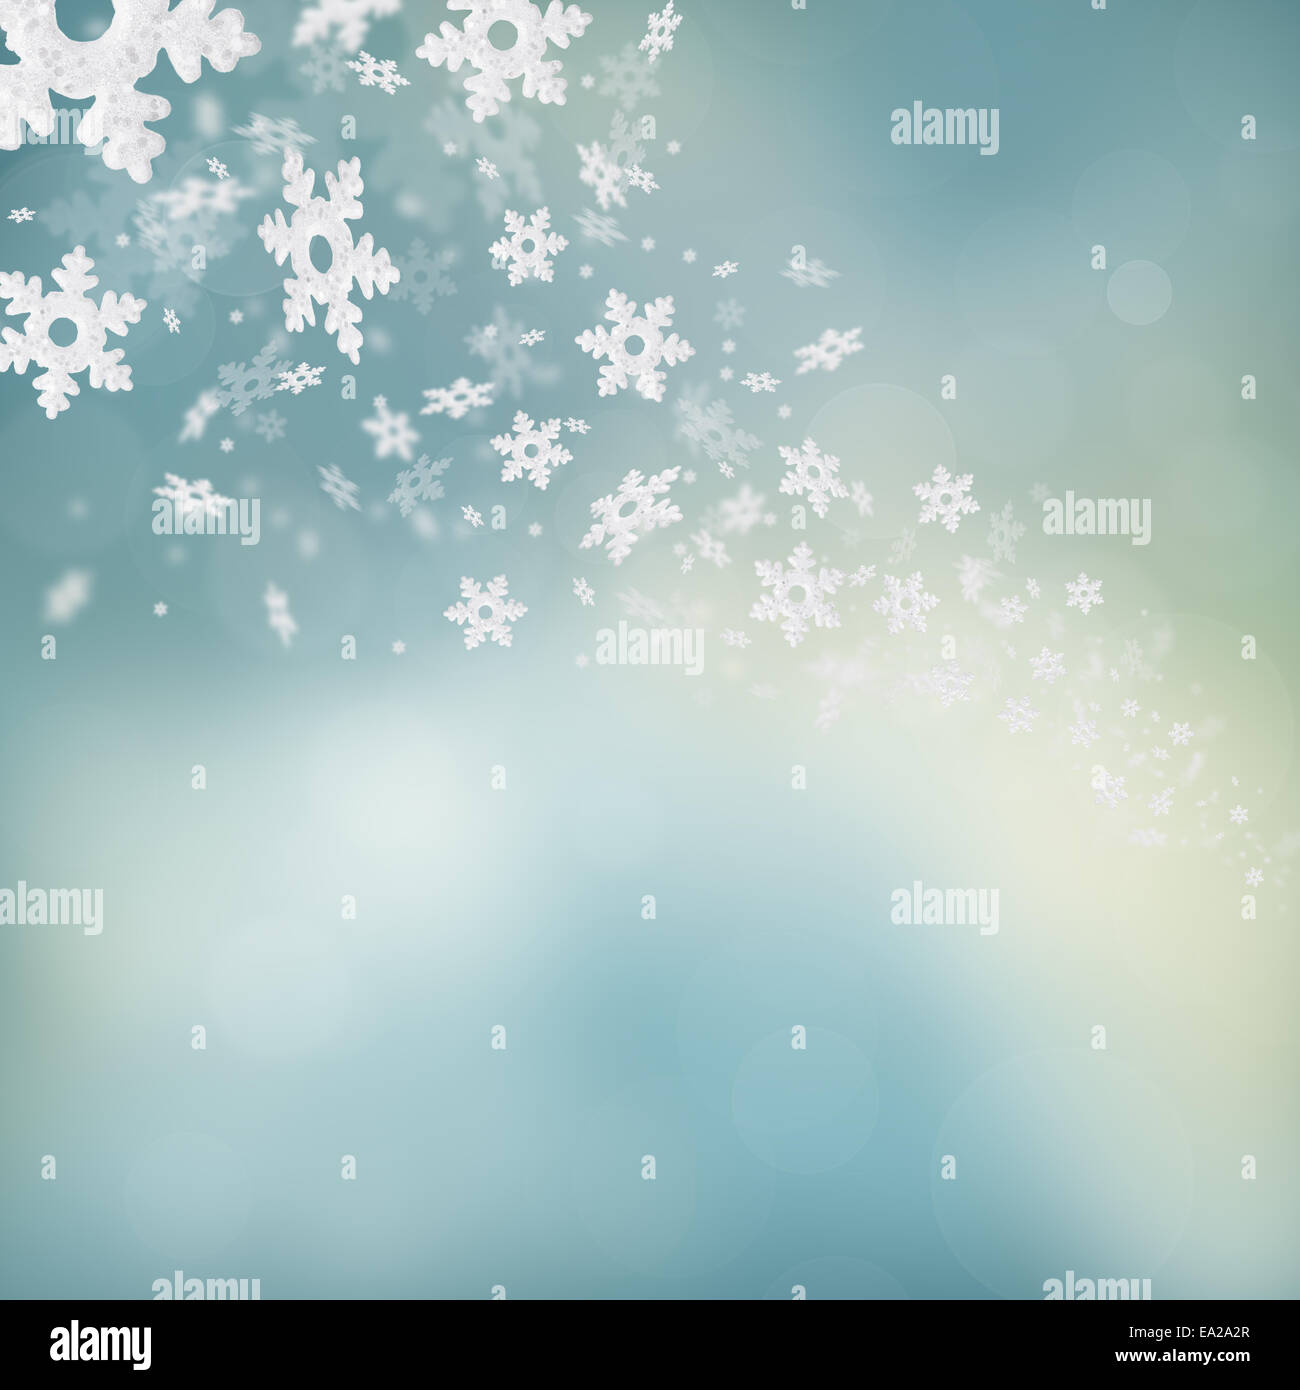 Shimmering christmas background with flying snowflakes - Stock Image